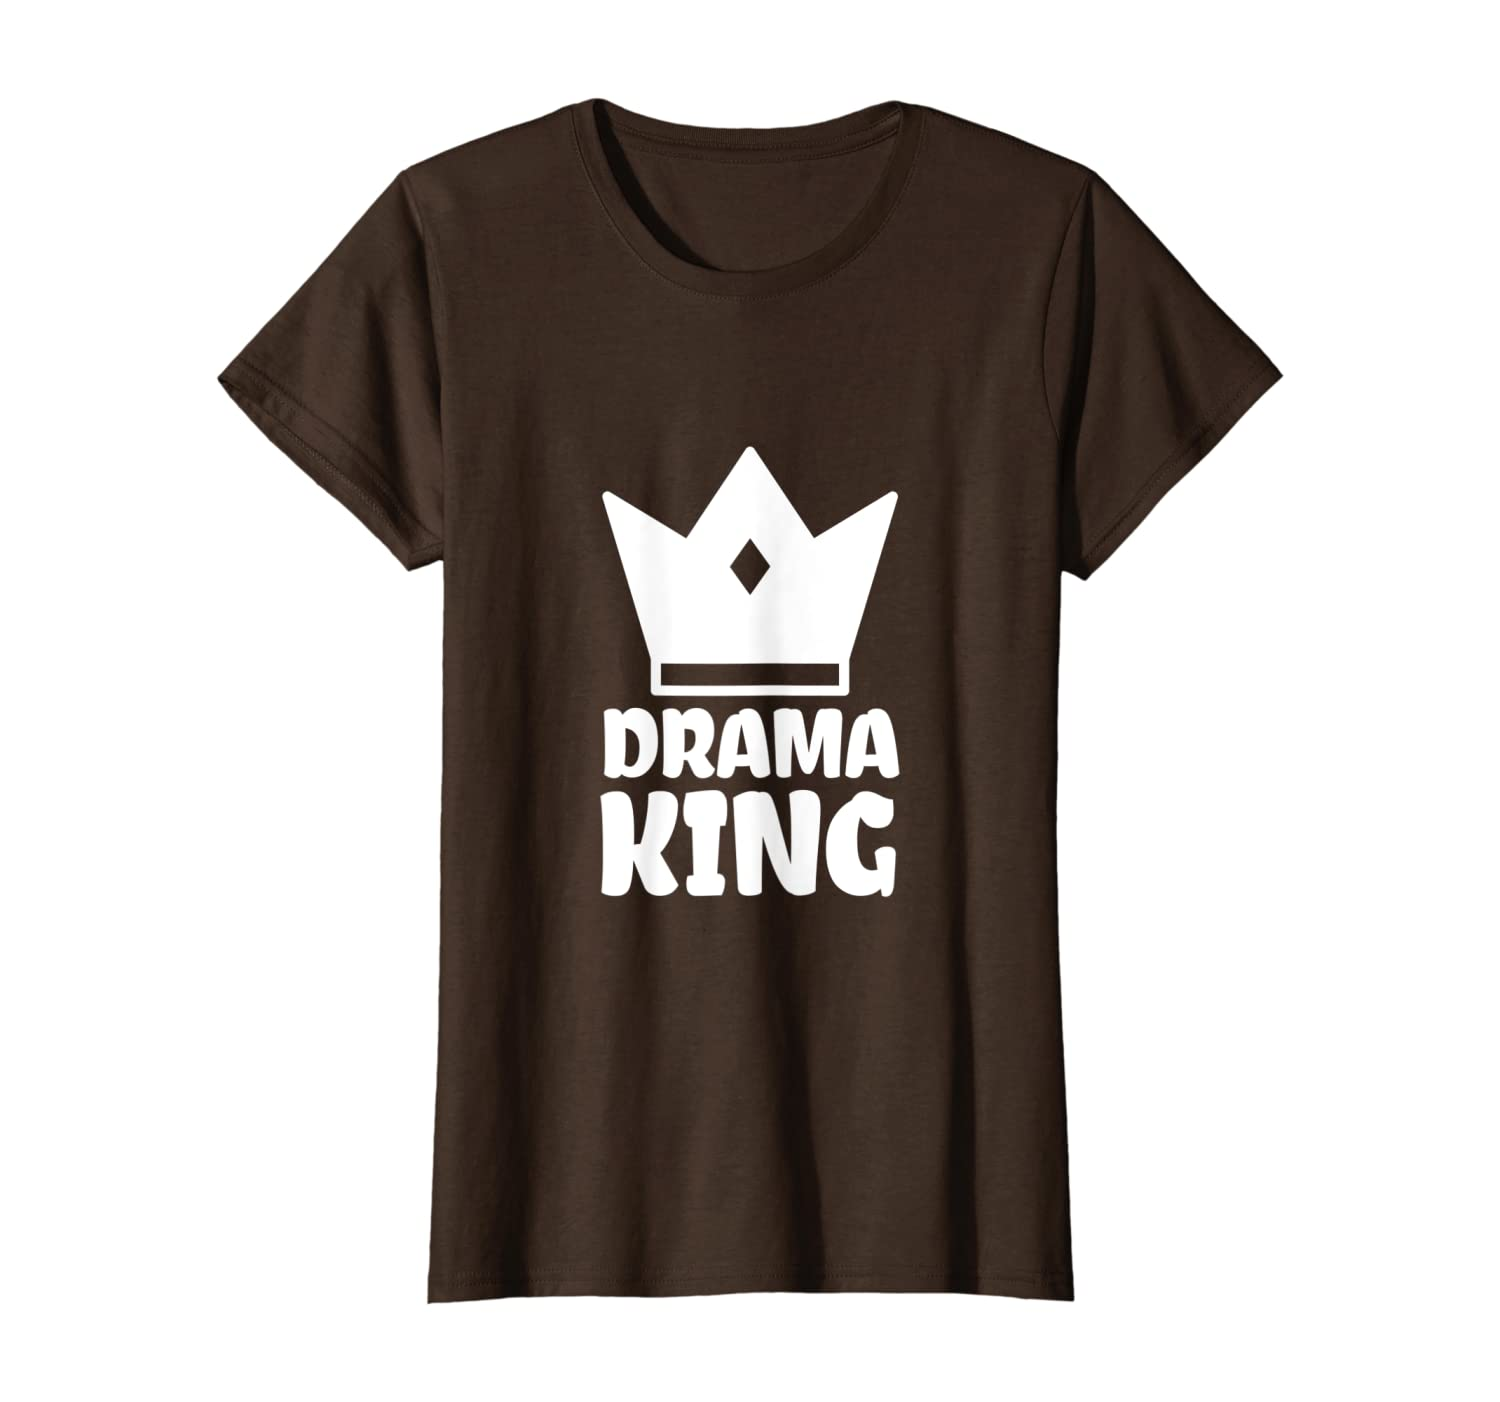 Drama King T-shirt for Men and Boys